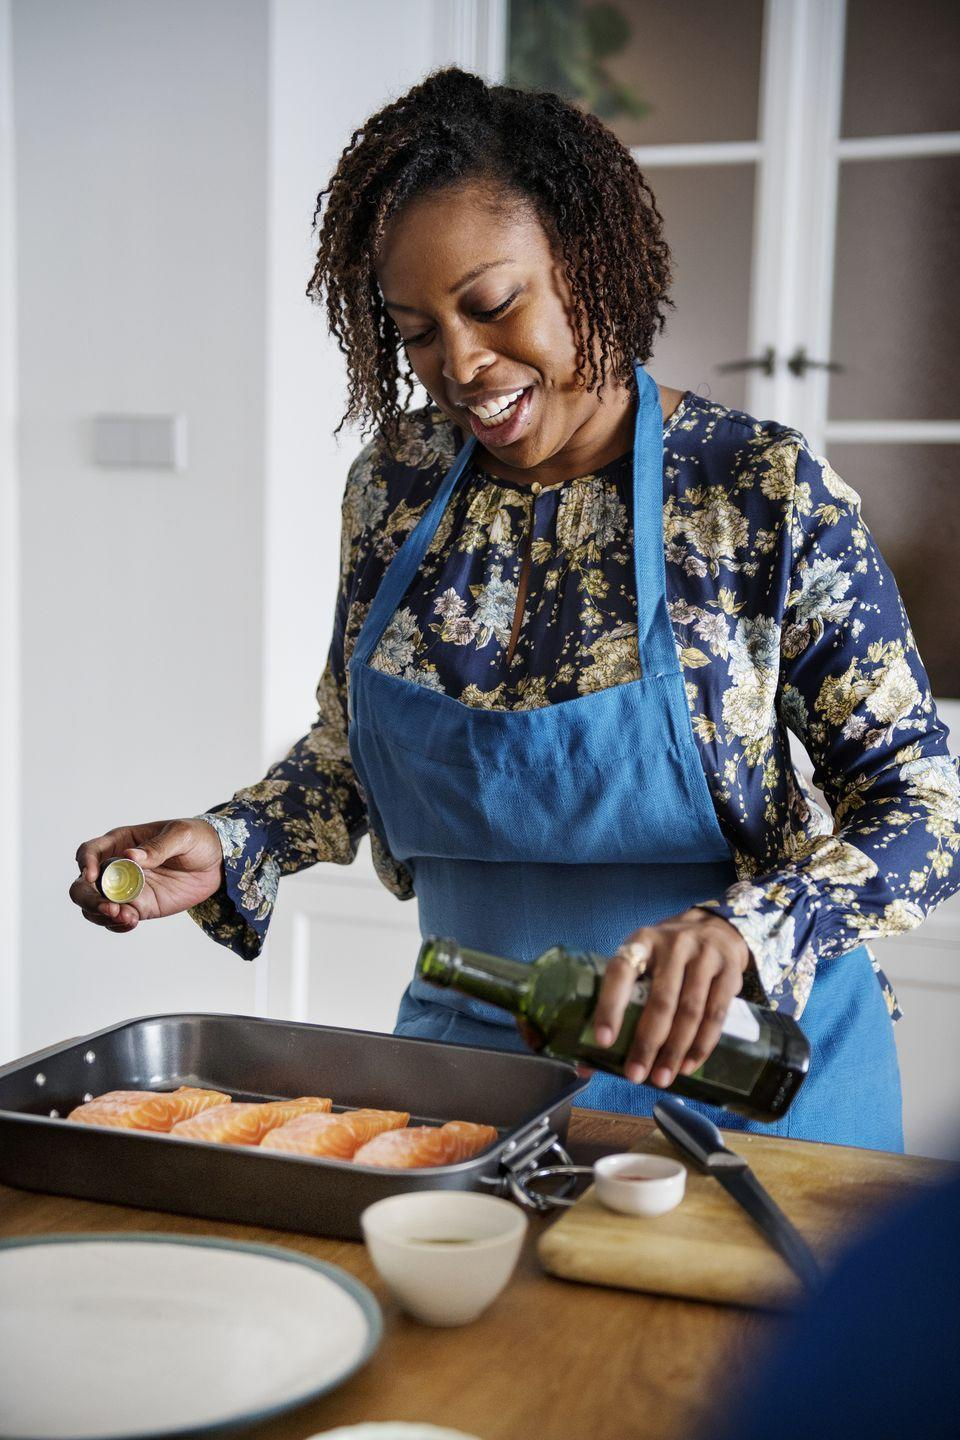 """<p>Who says your resolution has to be sticking to just one thing. As they say, """"Variety is the spice of life."""" Well, spice up your new year by setting a goal to try something new each month. If you are a foodie, it could be a new restaurant, <a href=""""https://www.countryliving.com/food-drinks/g1903/slow-cooker-recipes/"""" rel=""""nofollow noopener"""" target=""""_blank"""" data-ylk=""""slk:recipe"""" class=""""link rapid-noclick-resp"""">recipe</a>, or <a href=""""https://www.countryliving.com/food-drinks/g877/sweet-potato-recipes-1009/"""" rel=""""nofollow noopener"""" target=""""_blank"""" data-ylk=""""slk:ingredient"""" class=""""link rapid-noclick-resp"""">ingredient</a>. If you tend to get stuck in a rut, maybe changing up your route to work or changing up your <a href=""""https://www.countryliving.com/shopping/gifts/a34371446/revlon-hair-dryer-sale-prime-day/"""" rel=""""nofollow noopener"""" target=""""_blank"""" data-ylk=""""slk:hairstyle"""" class=""""link rapid-noclick-resp"""">hairstyle</a> could be one of the new things you try. Again, start small, and work up to signing up for that pottery class or Barre class (unless that's what you've been hankering to try). Get creative and don't forget to get your friends and family involved.</p>"""